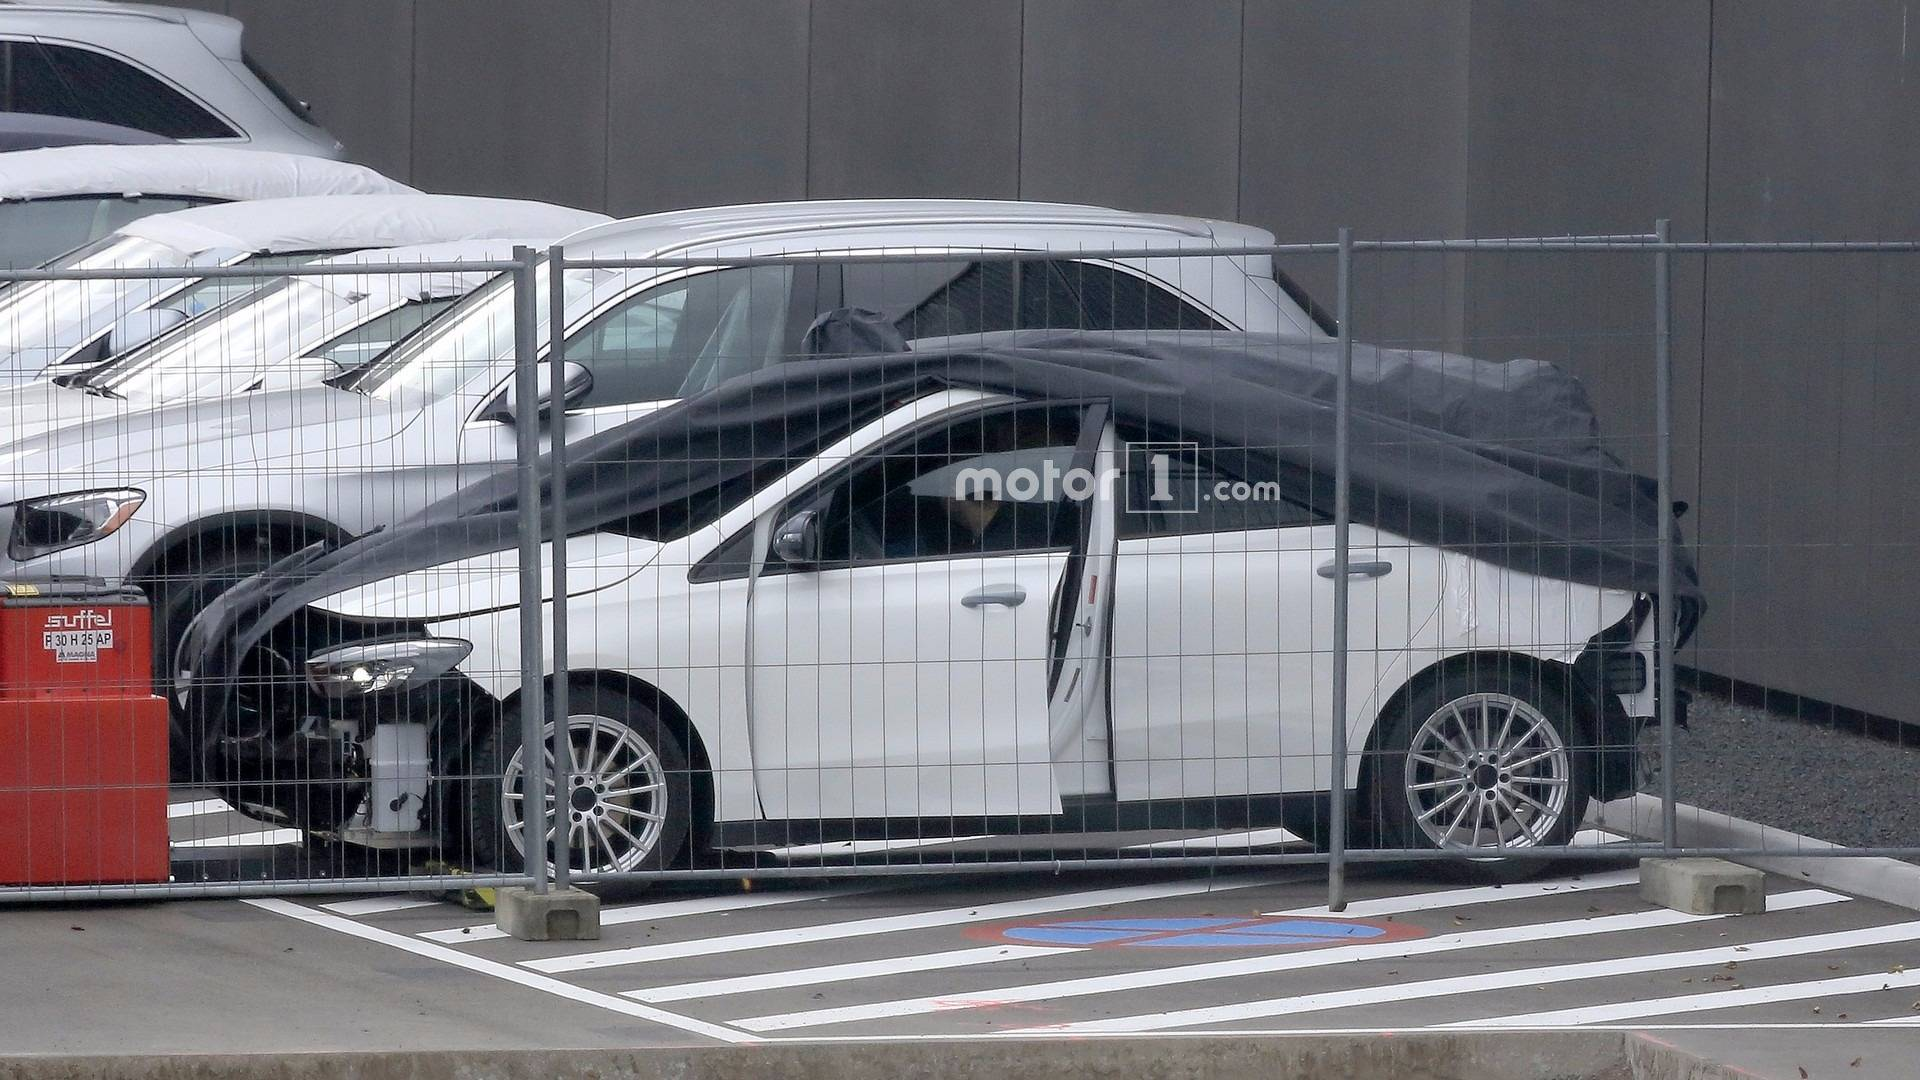 2019 mercedes b class caught on camera without bumpers. Black Bedroom Furniture Sets. Home Design Ideas